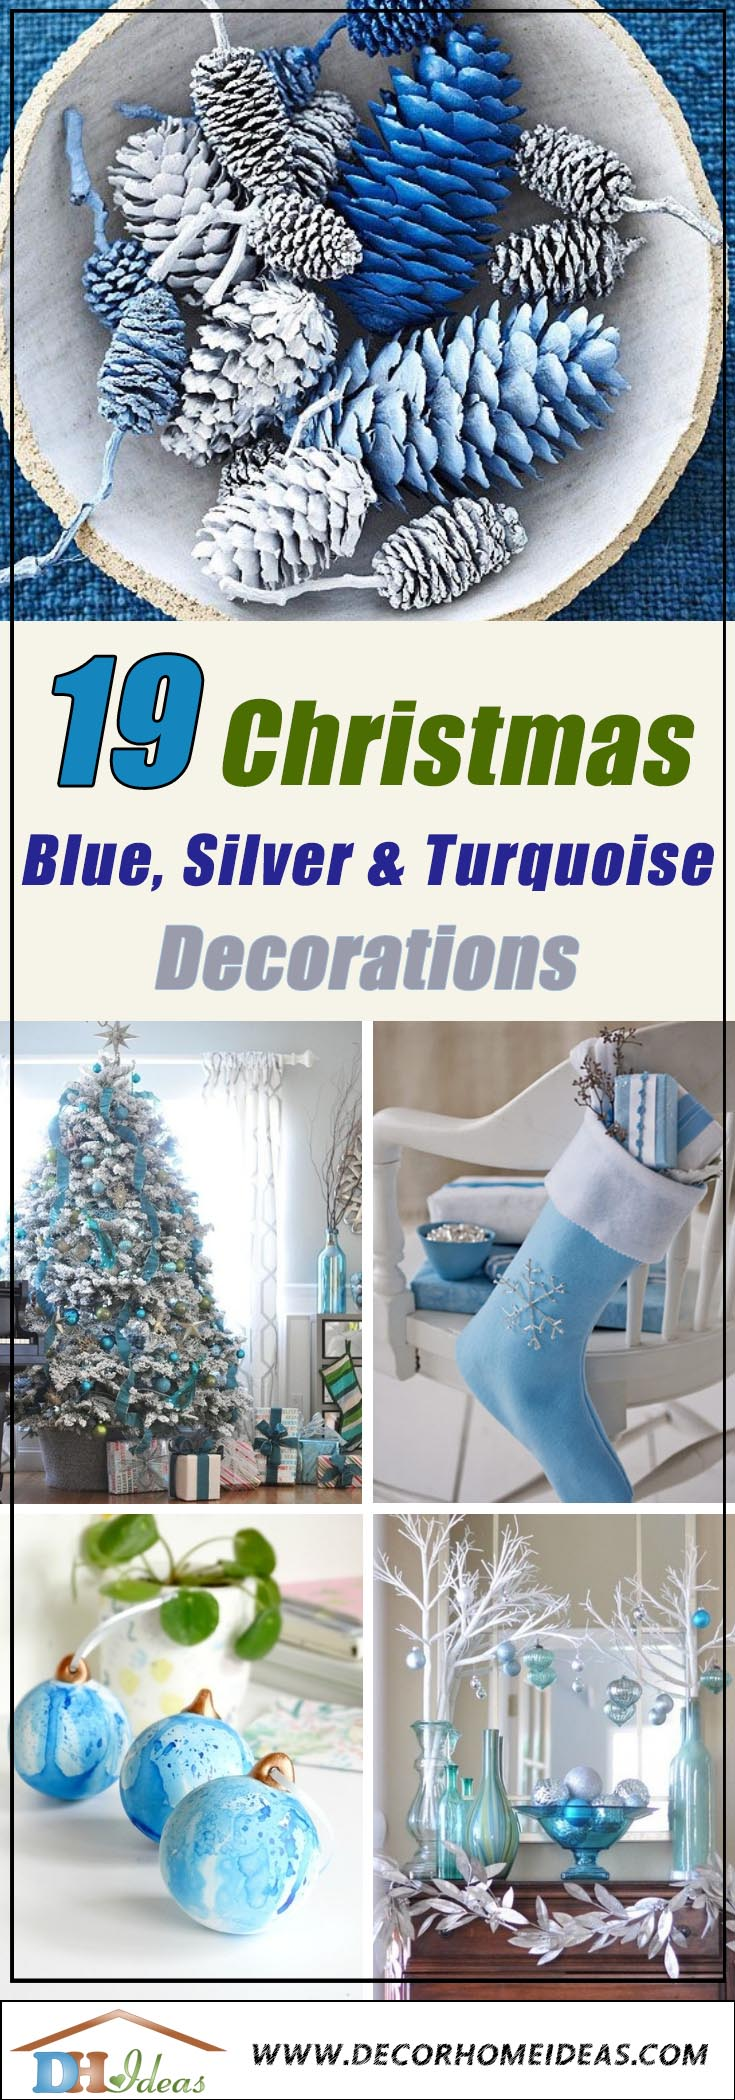 Christmas Decorations In Blue, Silver and Turquoise #Christmas #Christmasdecor #blue #silver #turquoise #decorhomeideas